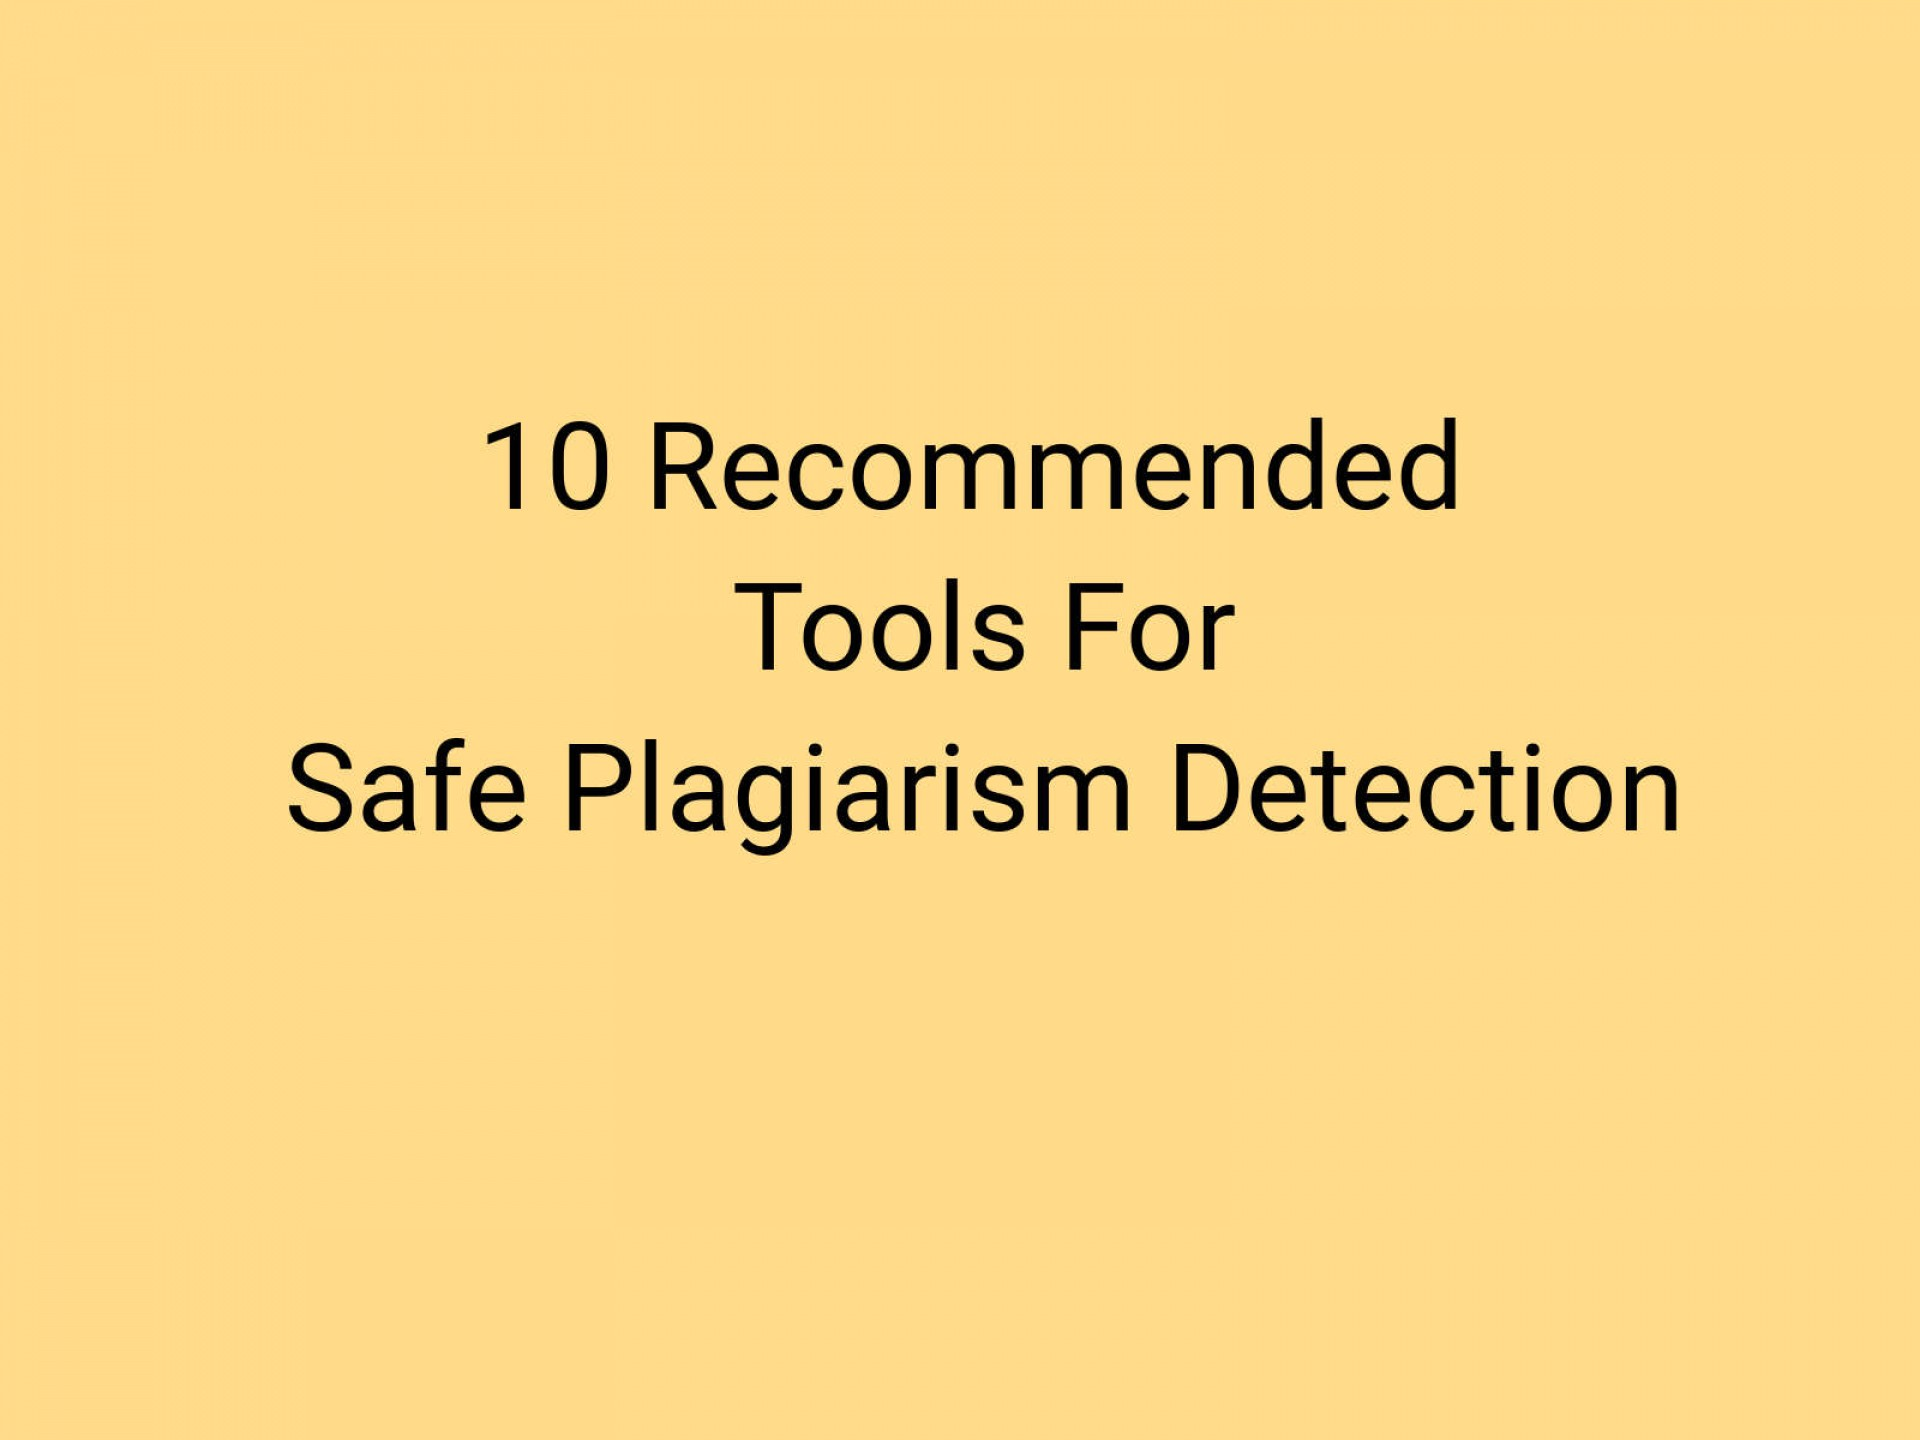 019 Free Plagiarism Checker For Researchs Online Detection Software Awesome Research Papers Students And Teachers Toolkit.thepensters.com Uk 1920